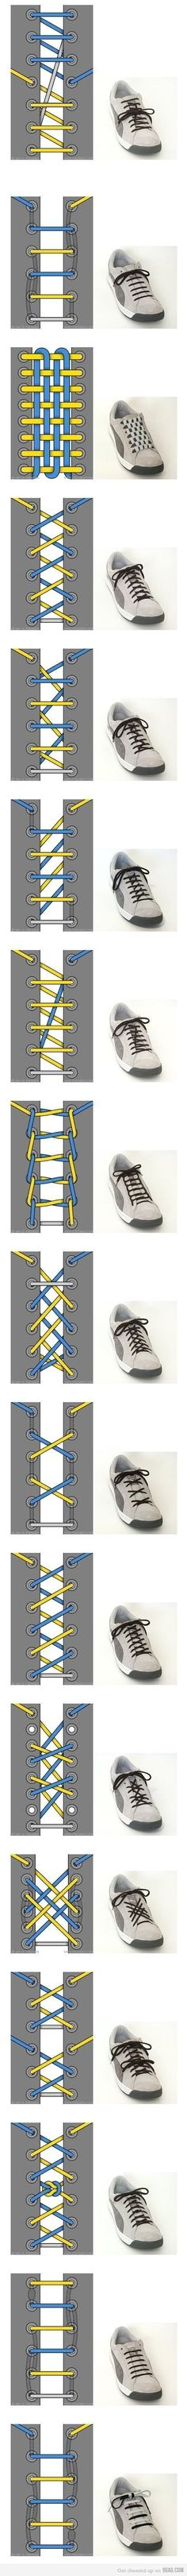 shoelaces - for Peta